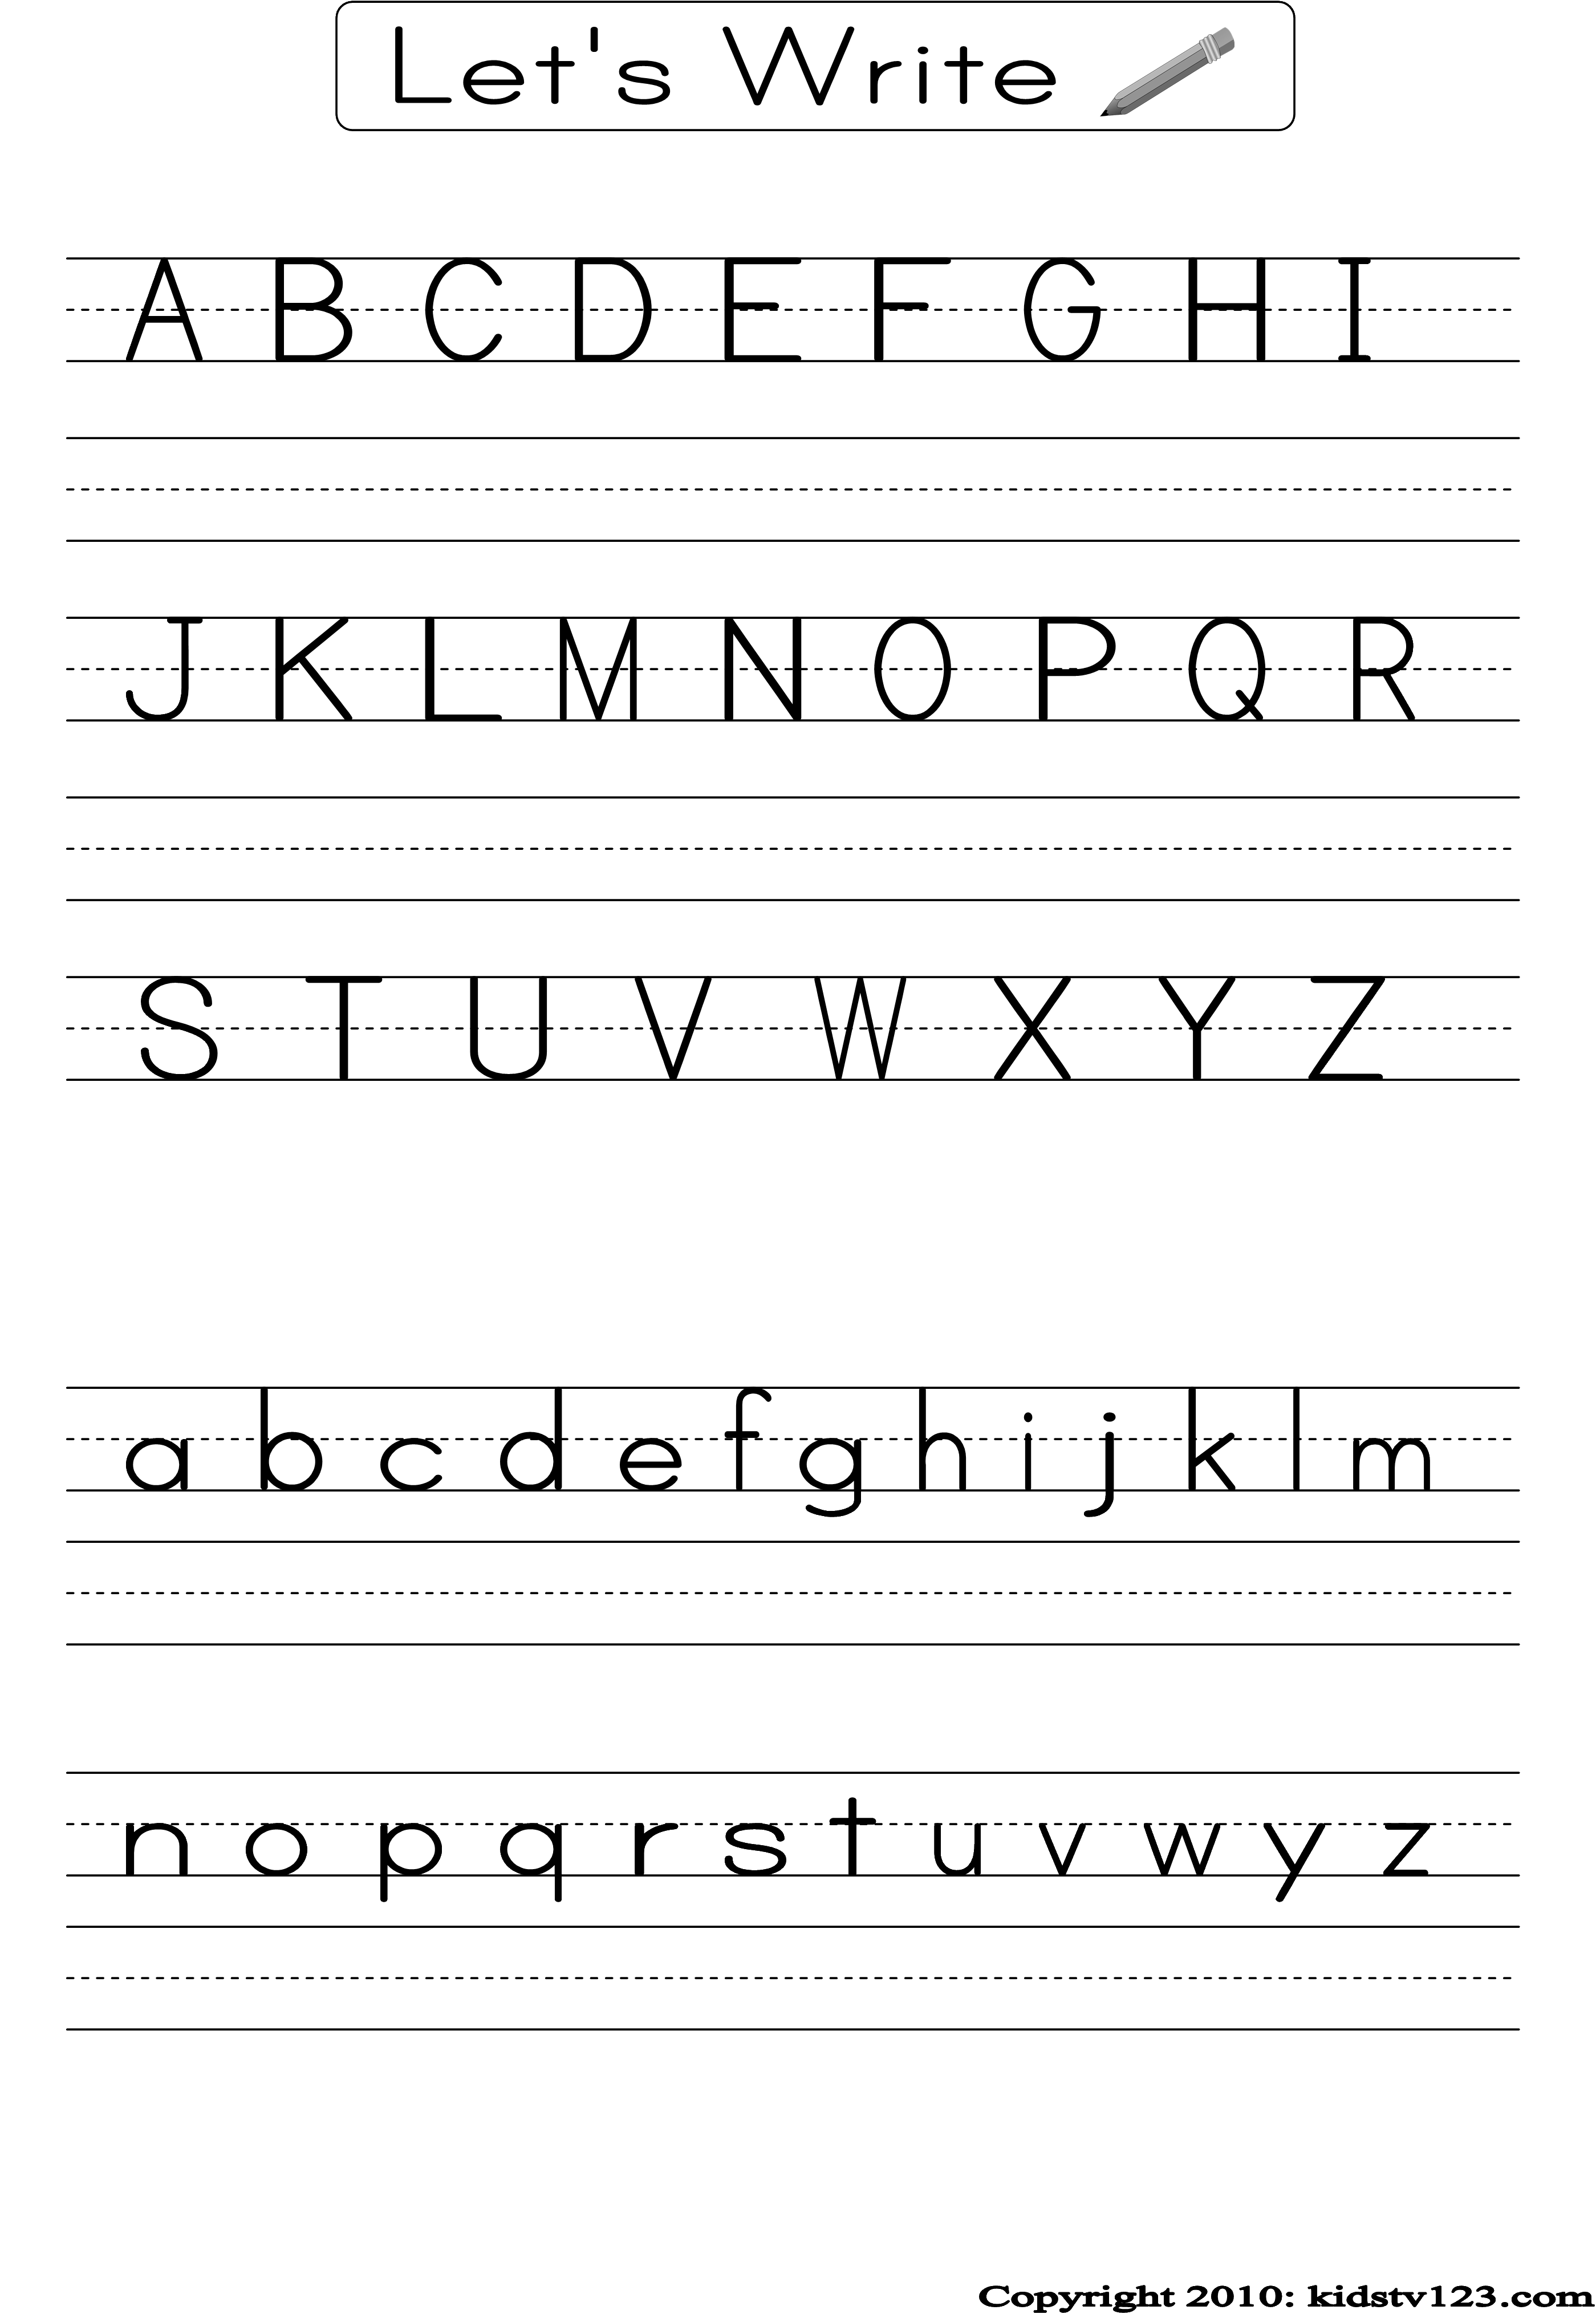 897502E4311627D8B756184483C0D2Ea (2799×4057) | Alphabet with Alphabet Handwriting Worksheets Free Printables